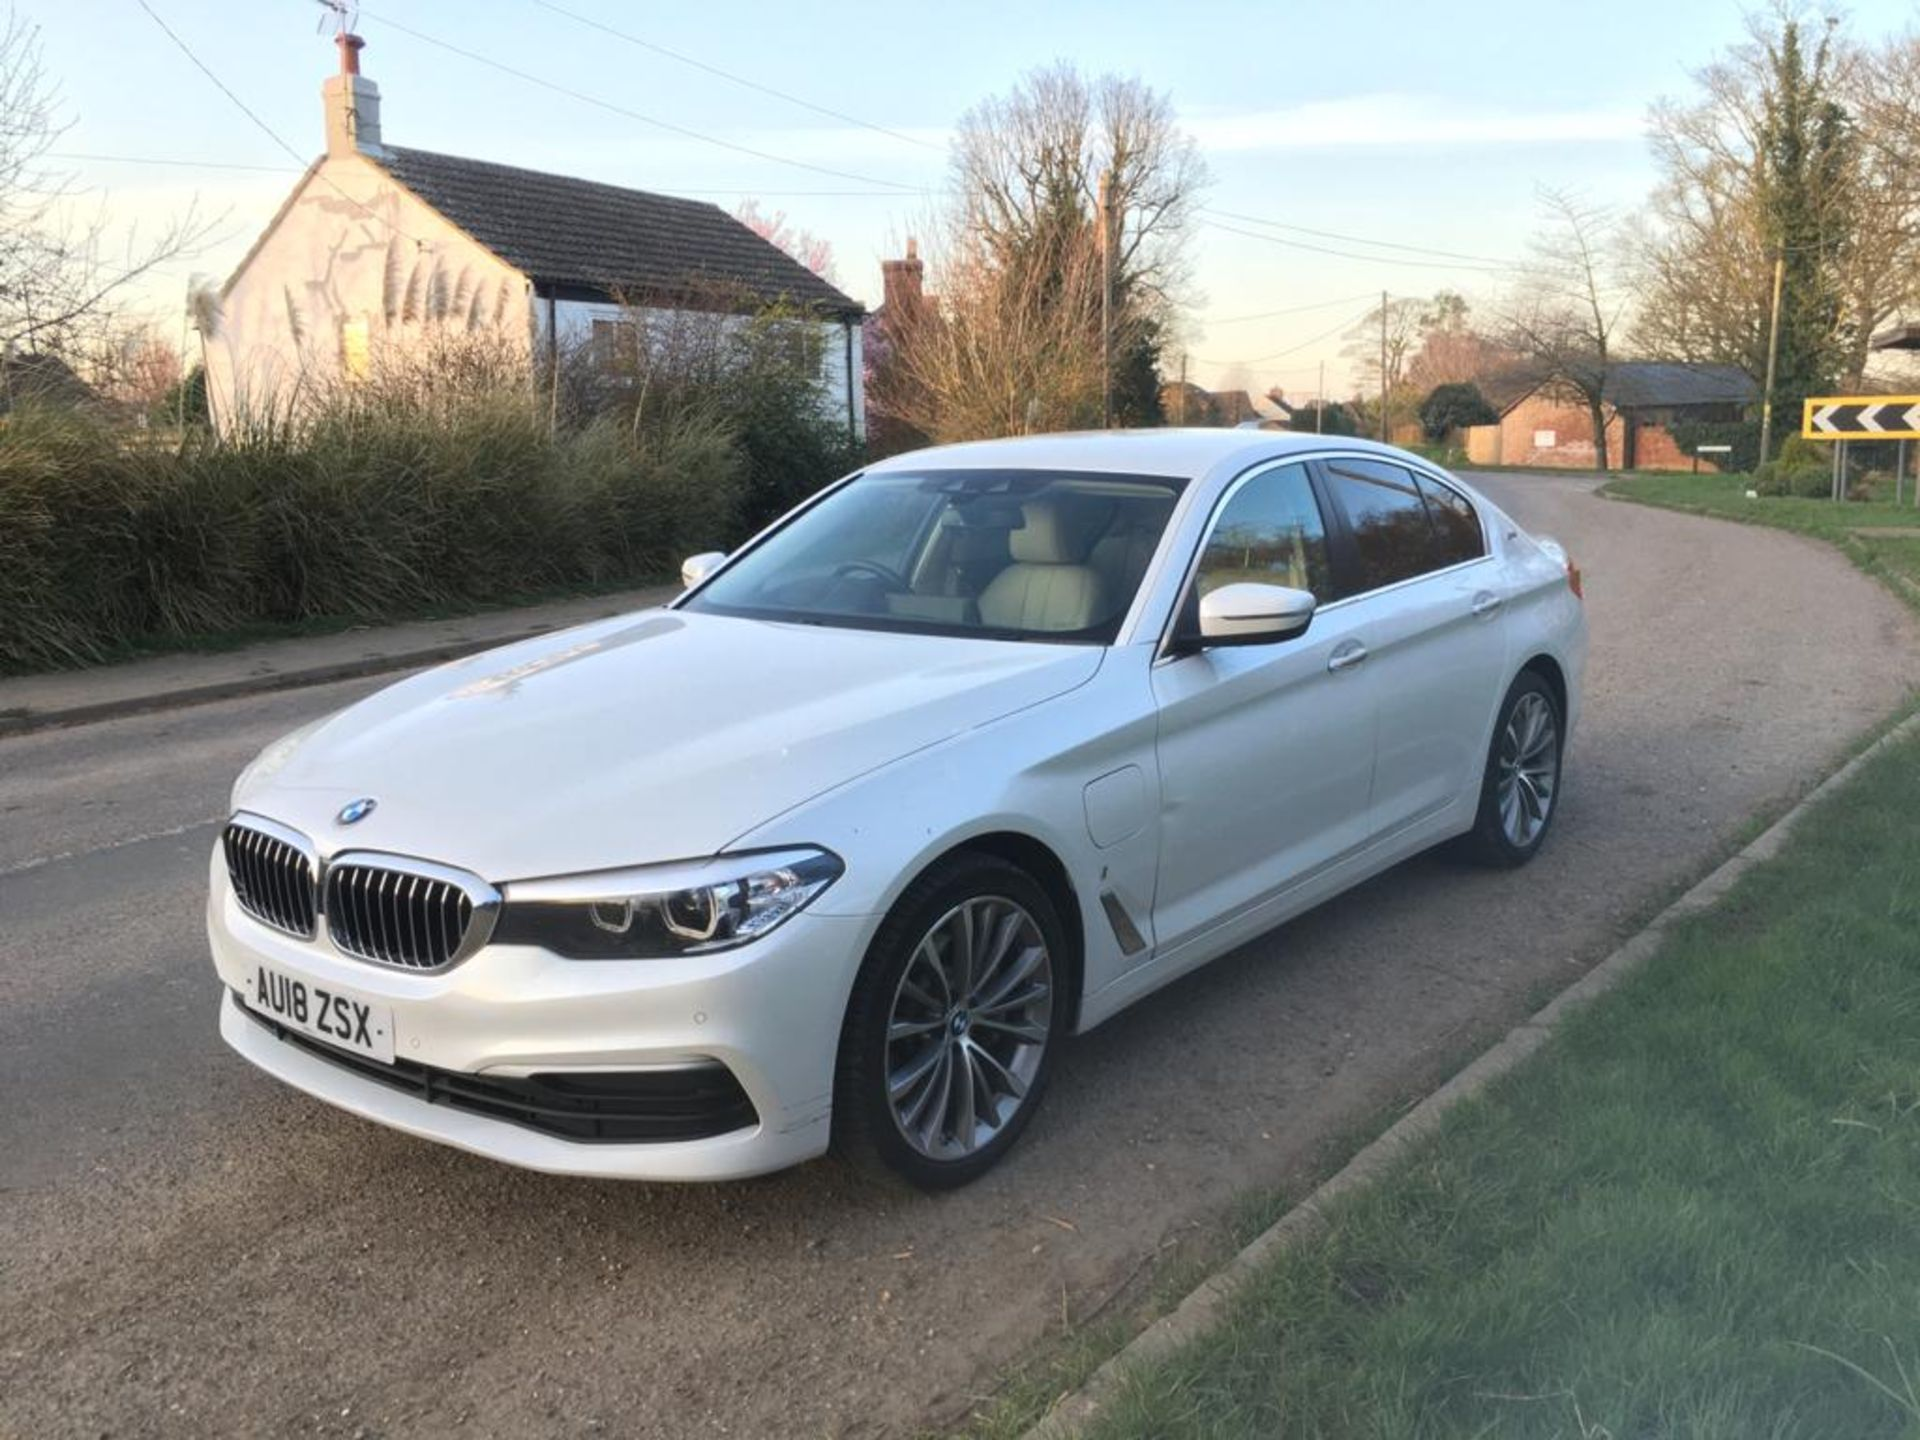 2018 BMW 530E 2.0 SE HYBIRD SALOON AUTOMATIC - Image 6 of 34